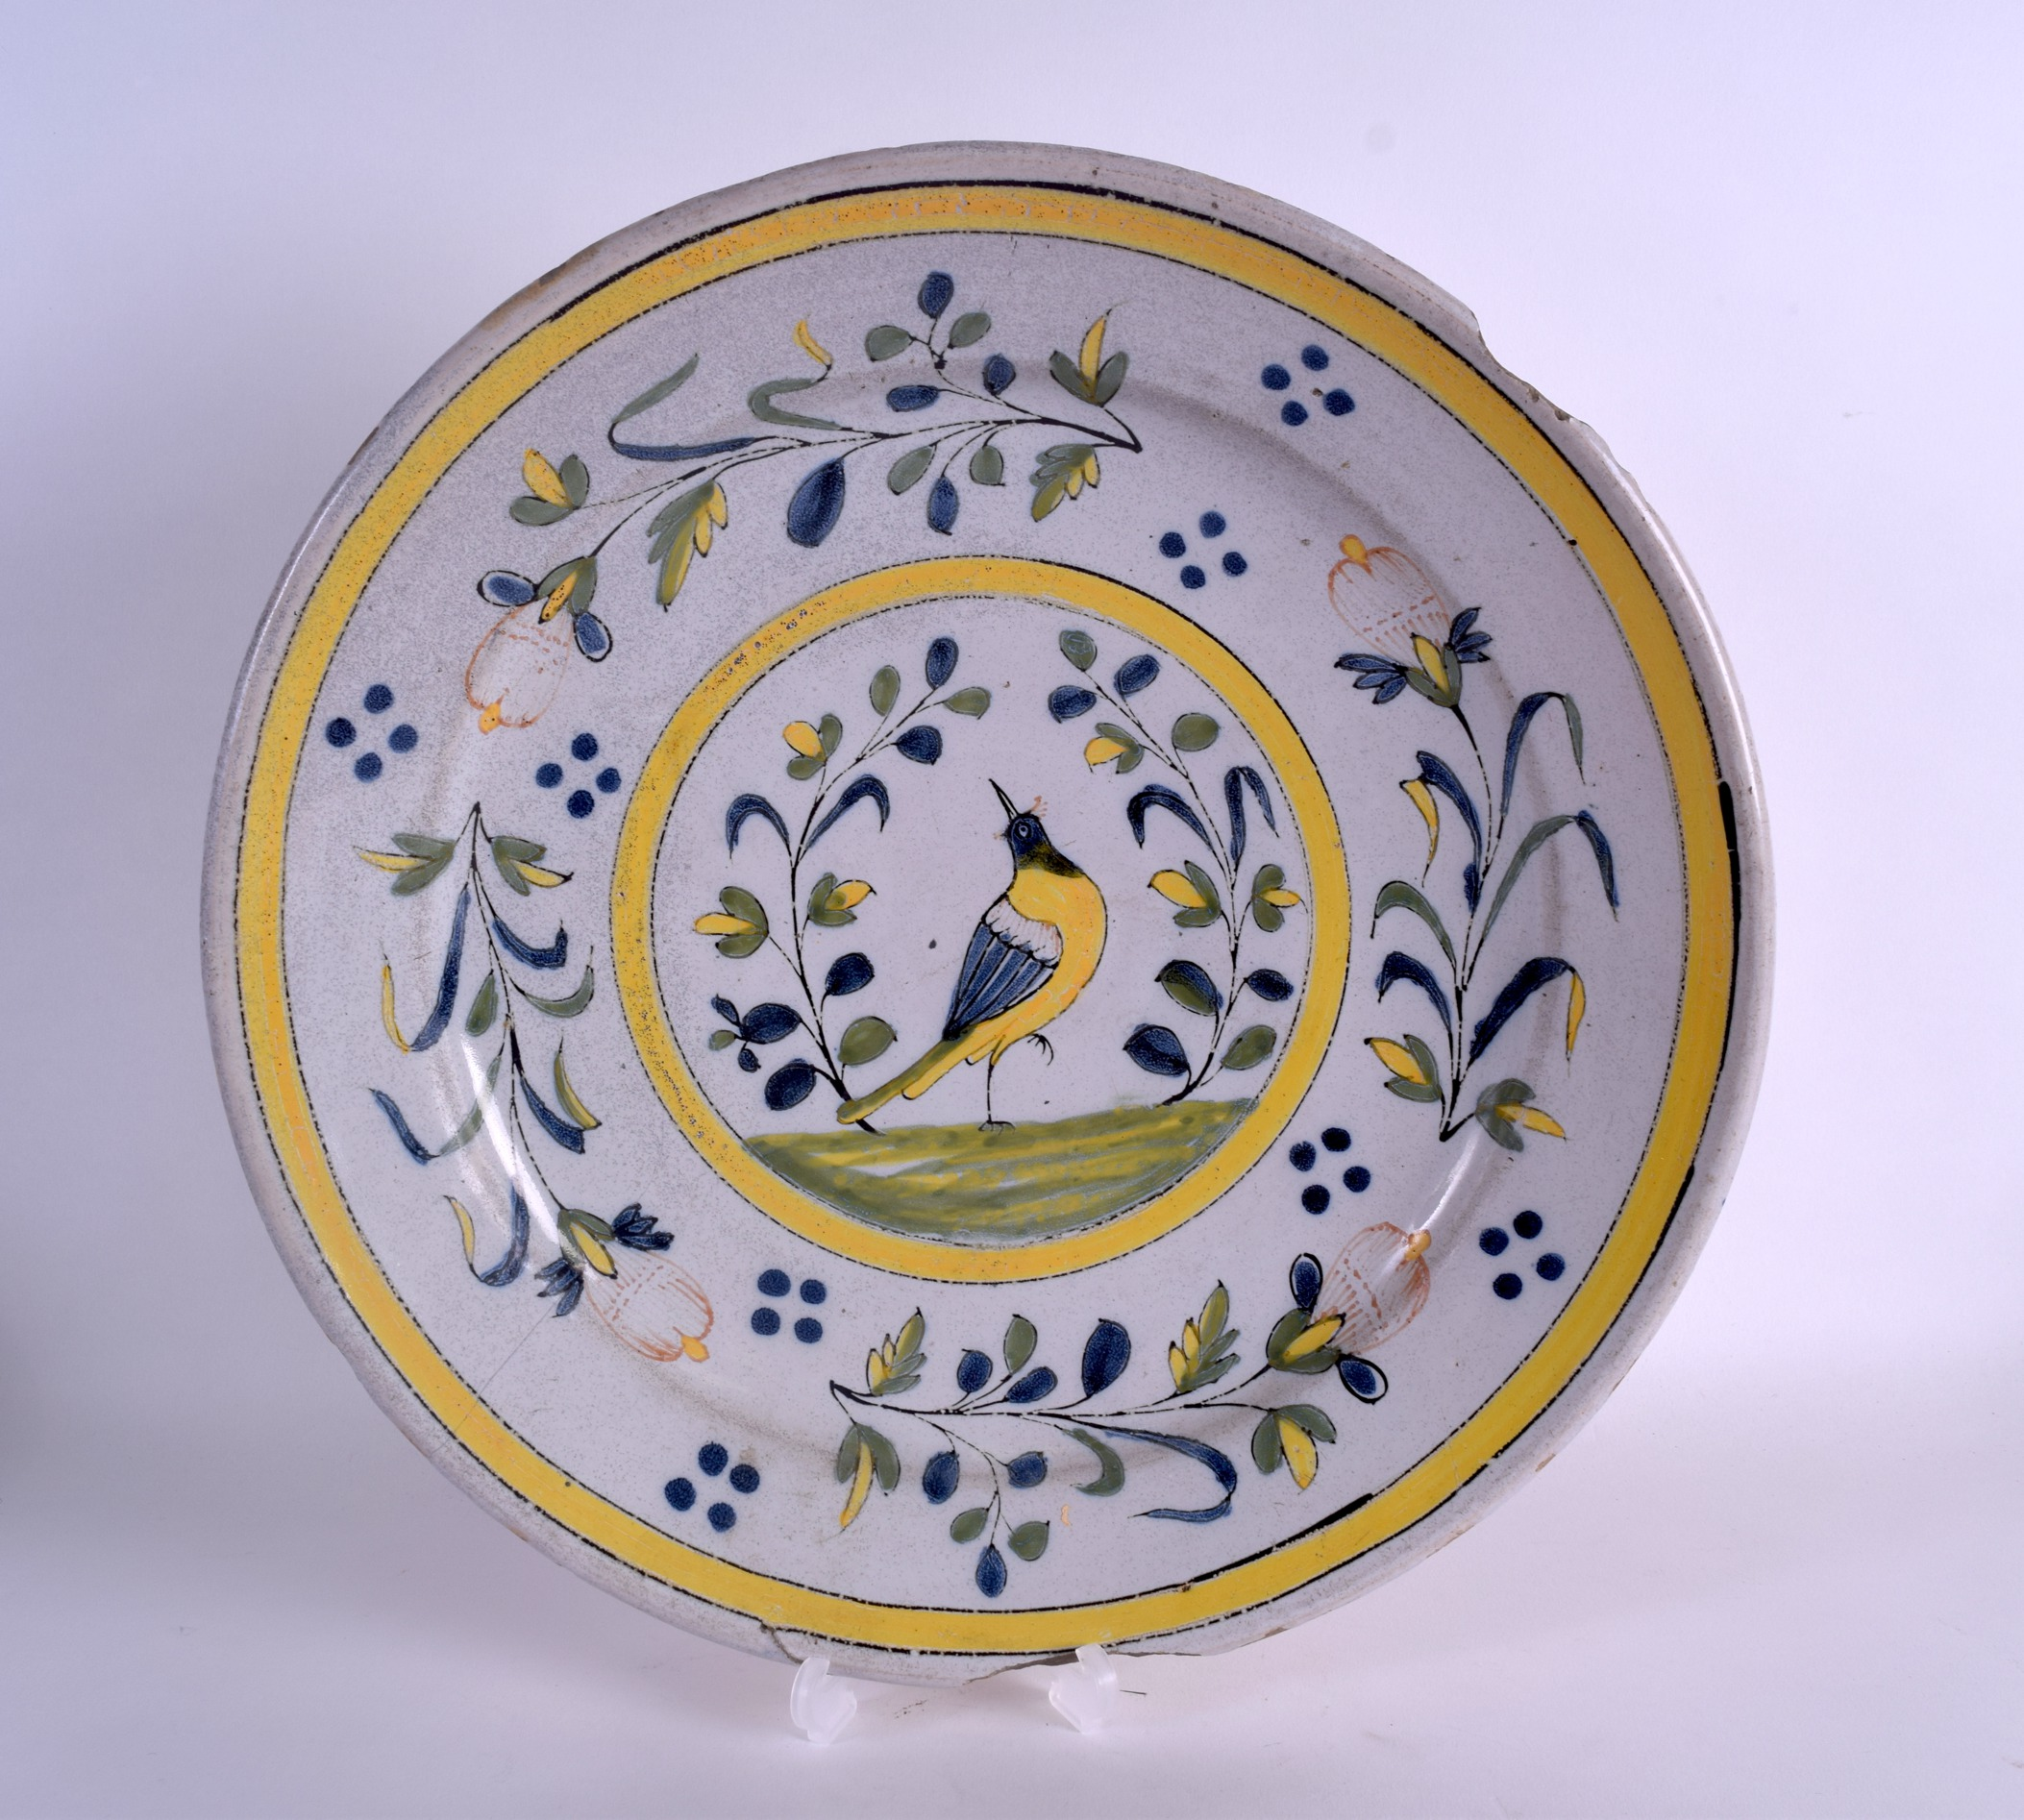 Lot 75 - AN 18TH CENTURY CONTINENTAL FAIENCE TIN GLAZED DISH painted with a bird roaming amongst foliage.